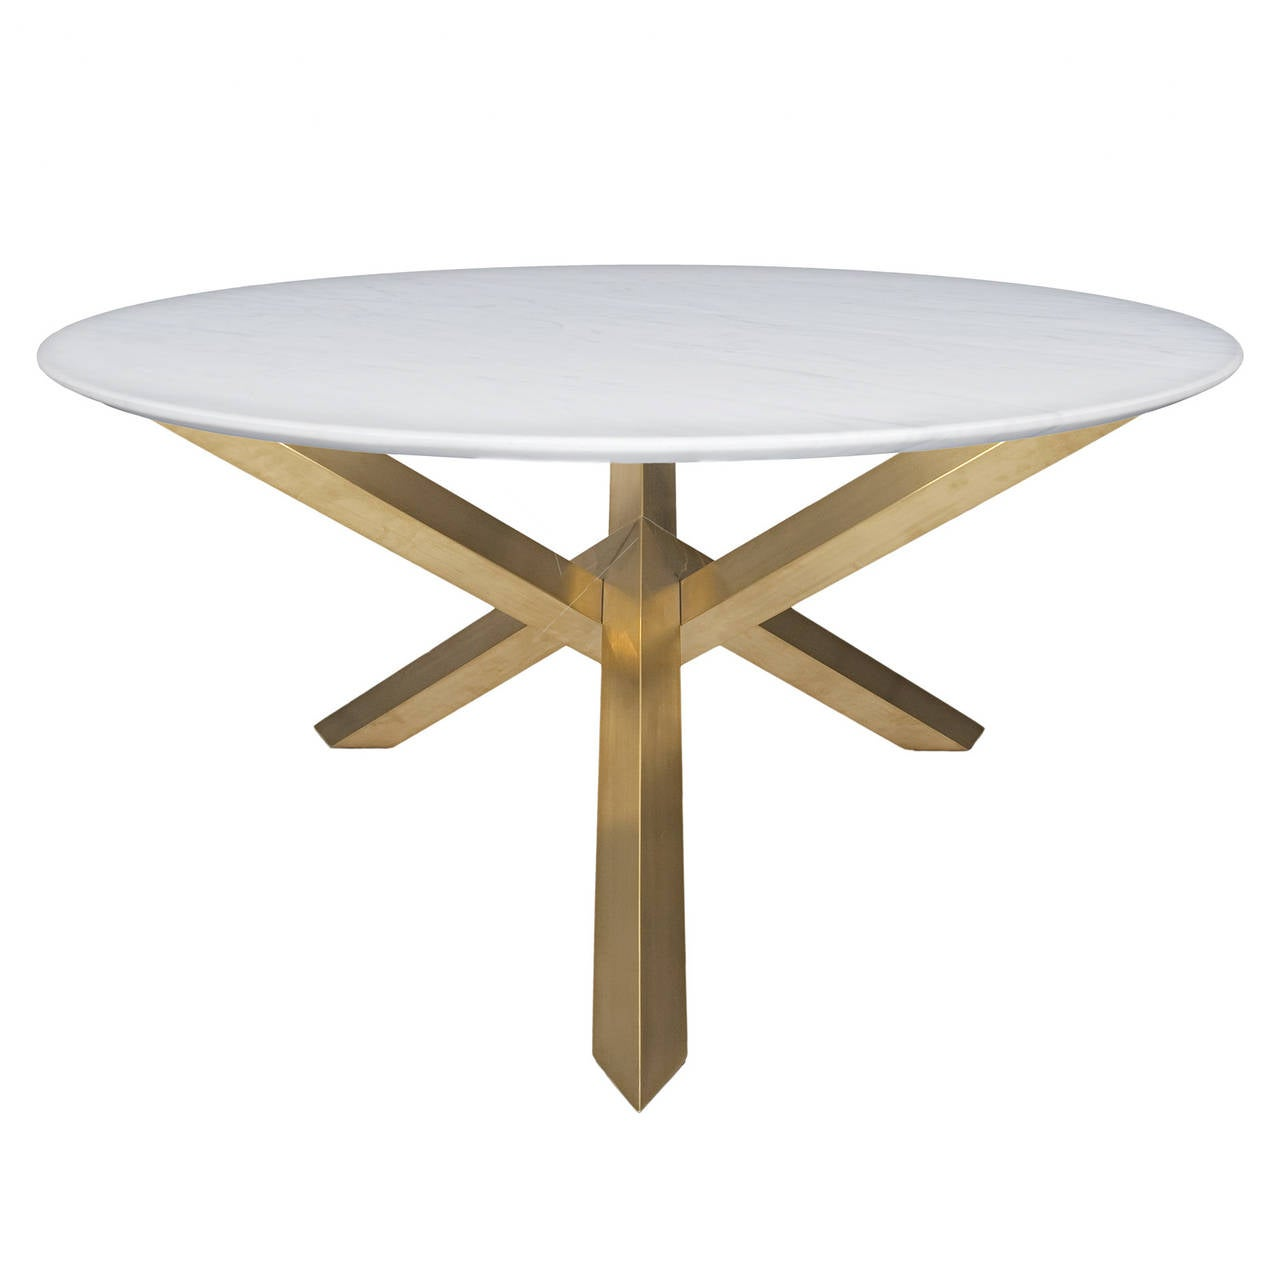 Round Dining Table with Brass Legs For Sale at 1stdibs : GoldDiningl from www.1stdibs.com size 1280 x 1280 jpeg 44kB